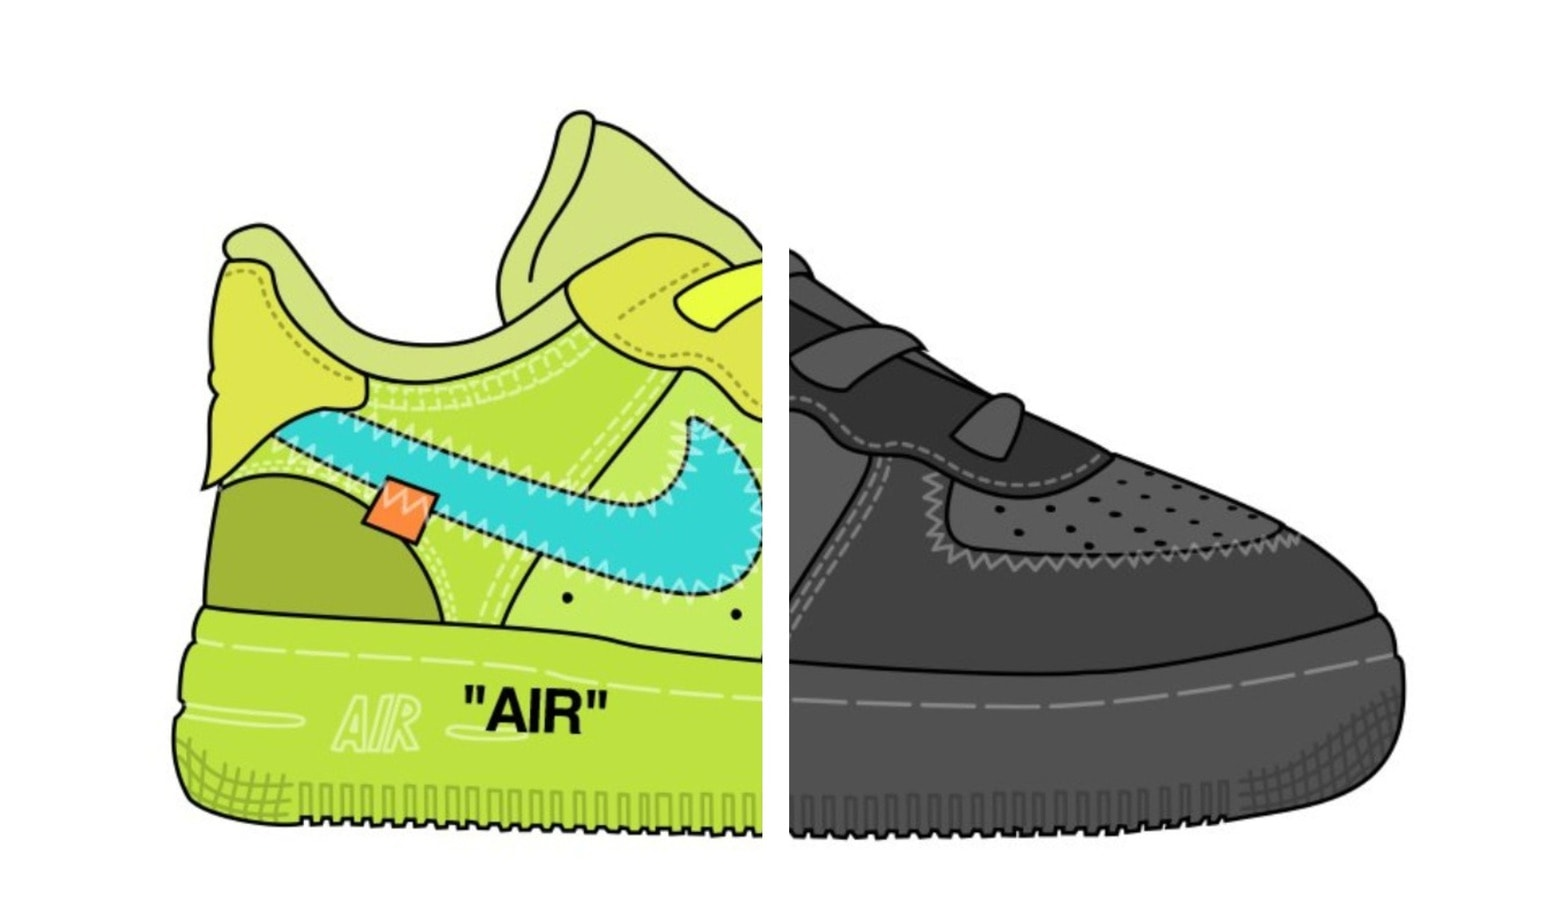 5f193db54b Earlier this year, we took a look at two new iterations of the Off-White x Nike  Air Force 1 Low dropping this year. The Volt & Black colorways look great,  ...